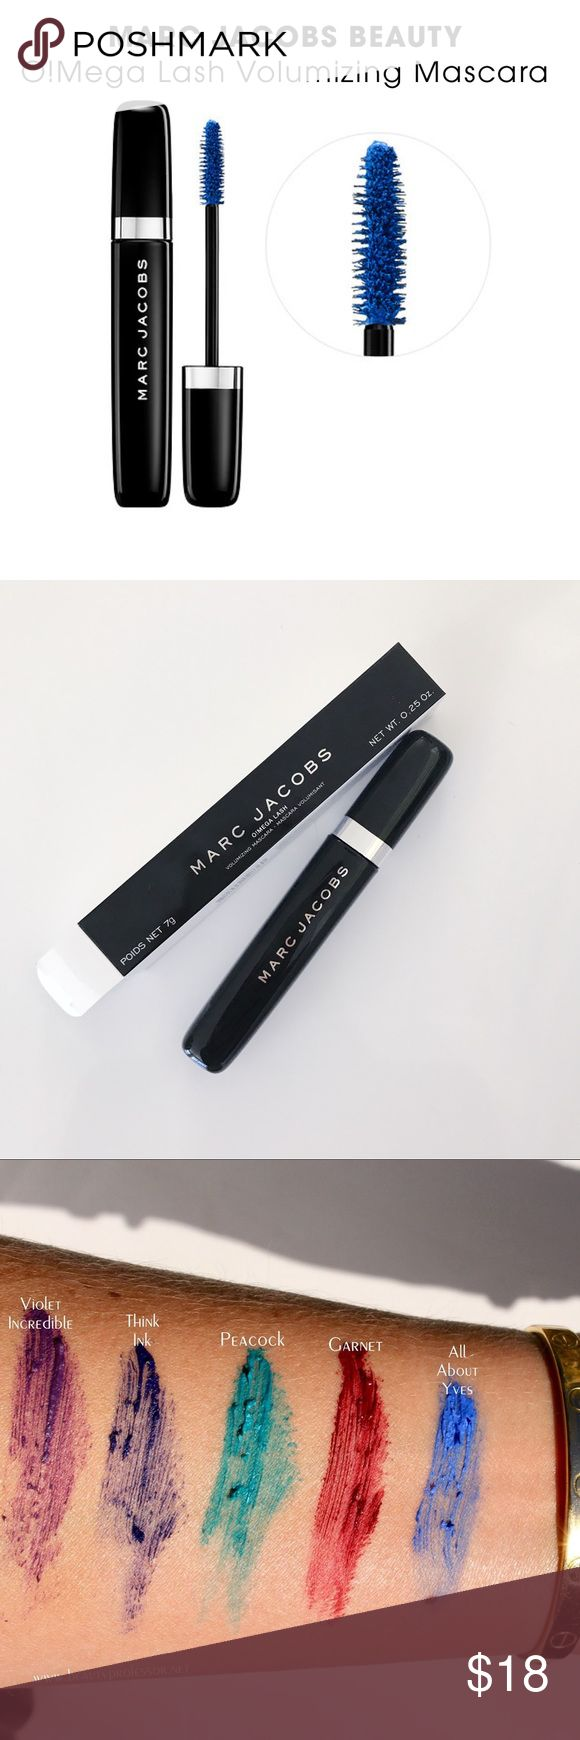 Marc Jacobs O!Mega Mascara in All About Yves Brand New In Box Marc Jacobs O!Mega Lash Volume Mascara in All About Yves. Inspired by the famous Yves Saint Laurent Blue. Marc Jacobs Makeup Mascara